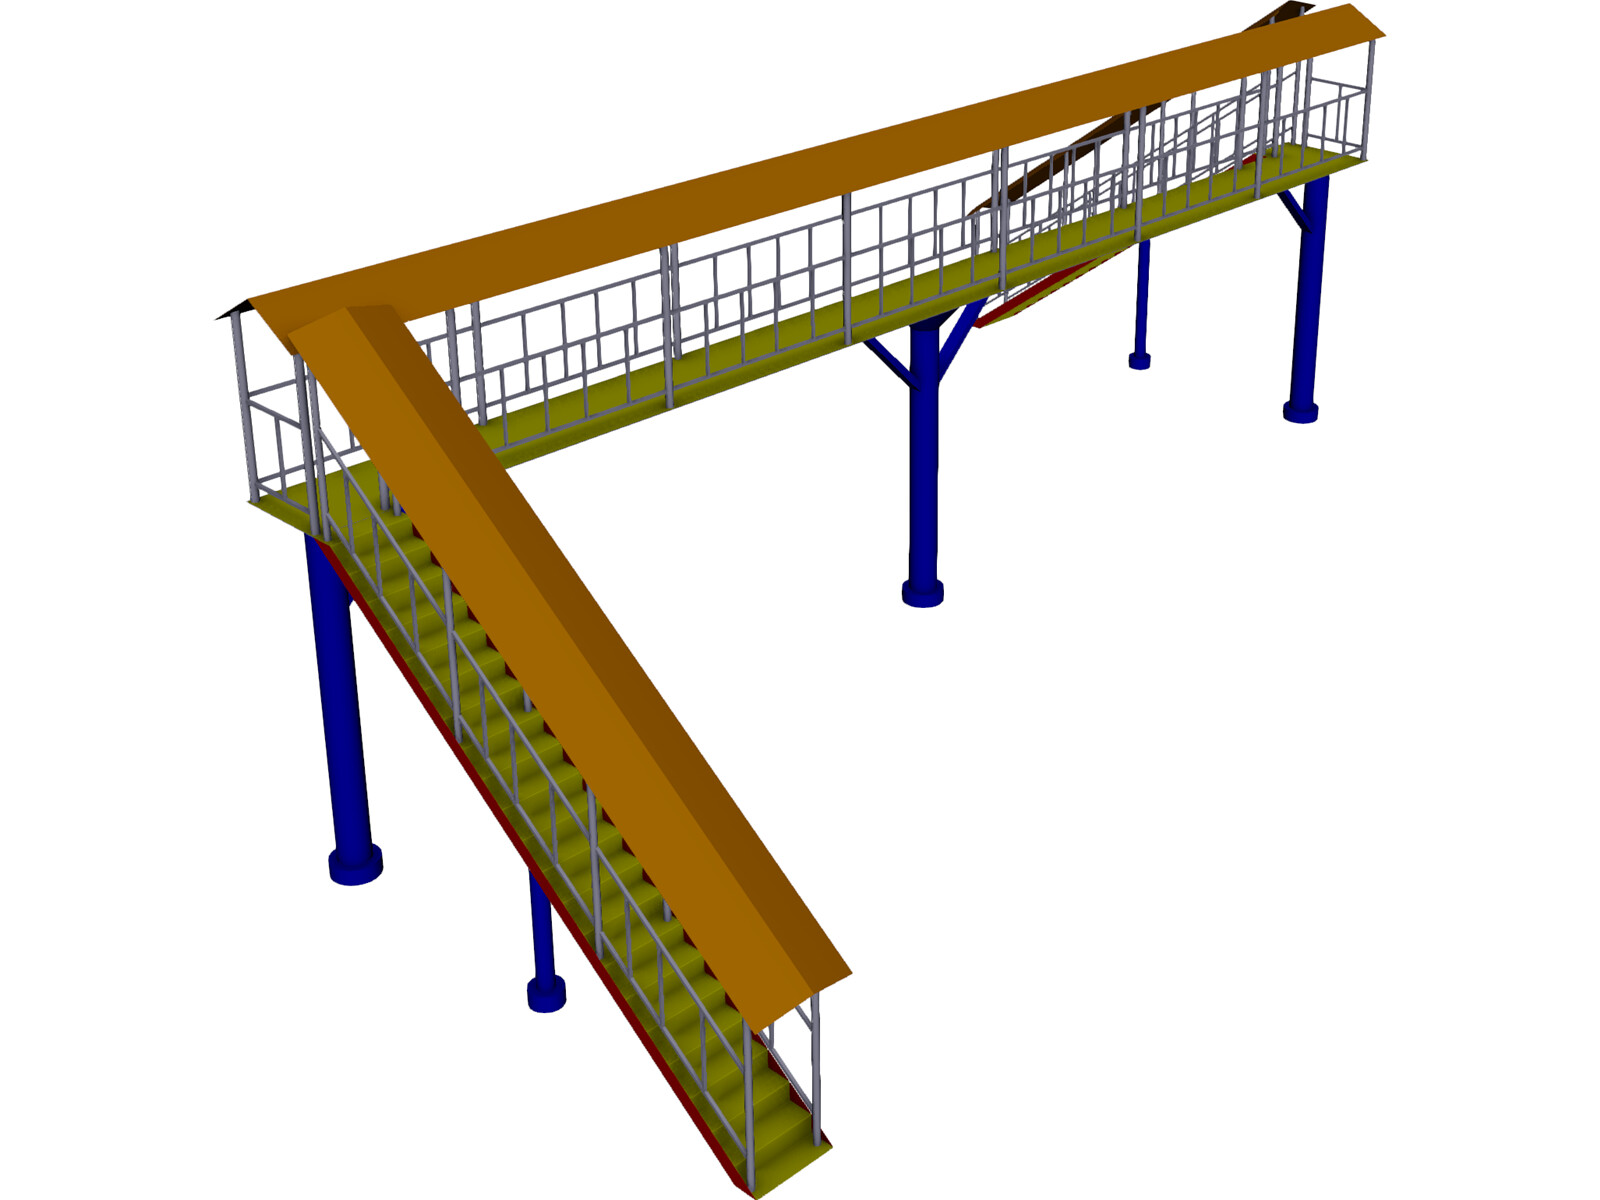 Passer Bridge 3D CAD Model